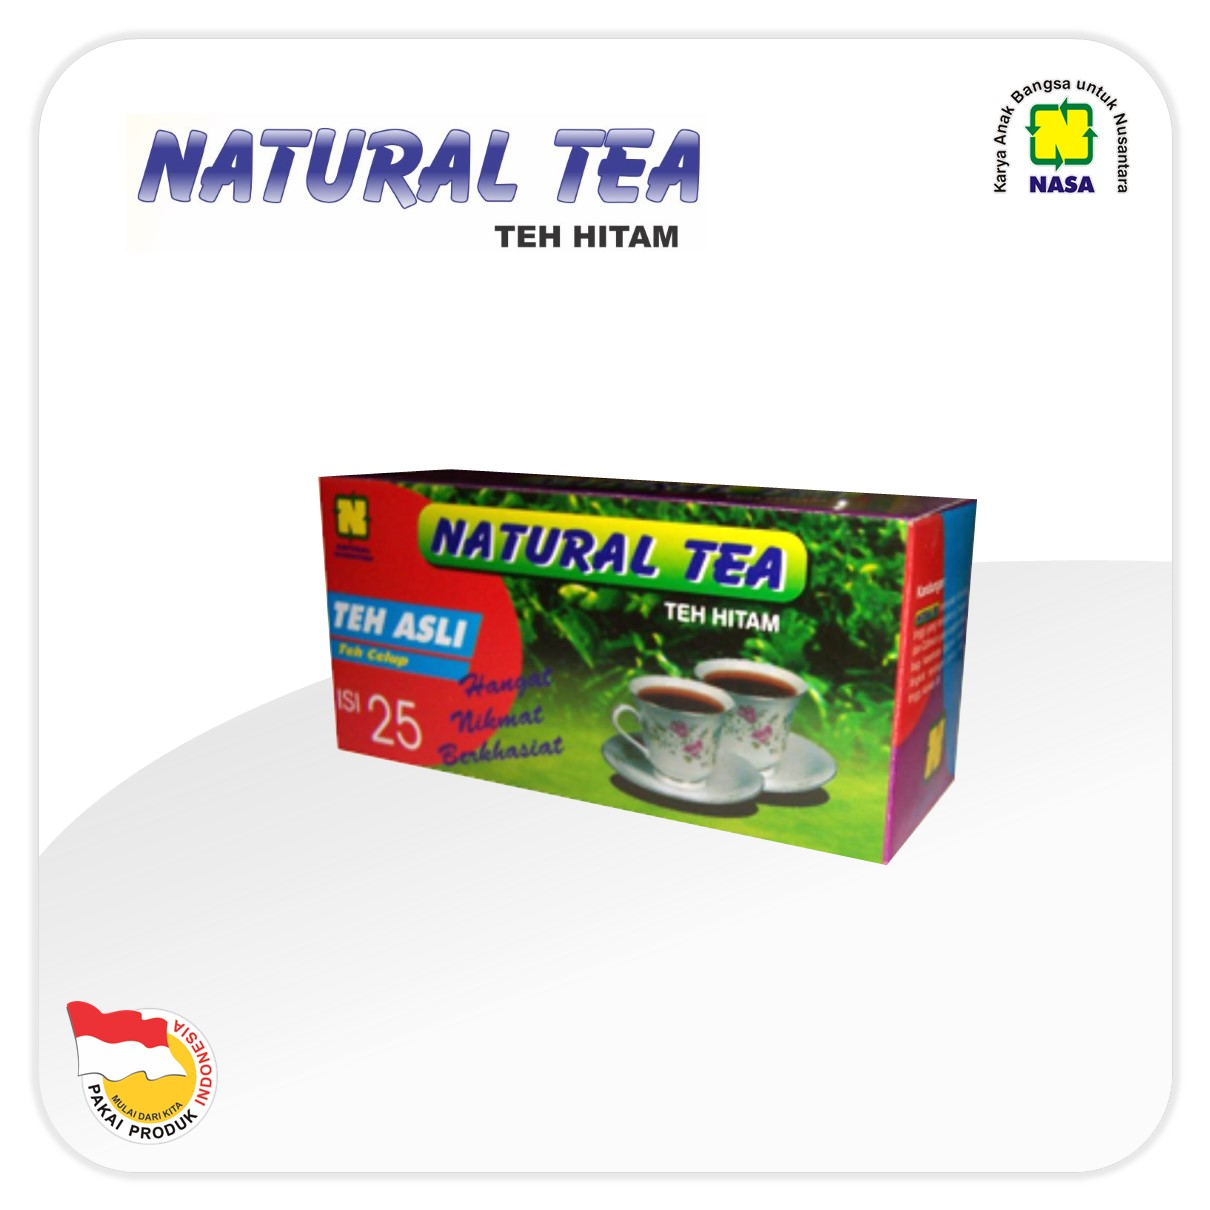 Natural Tea – Teh Hitam Celup Nasa